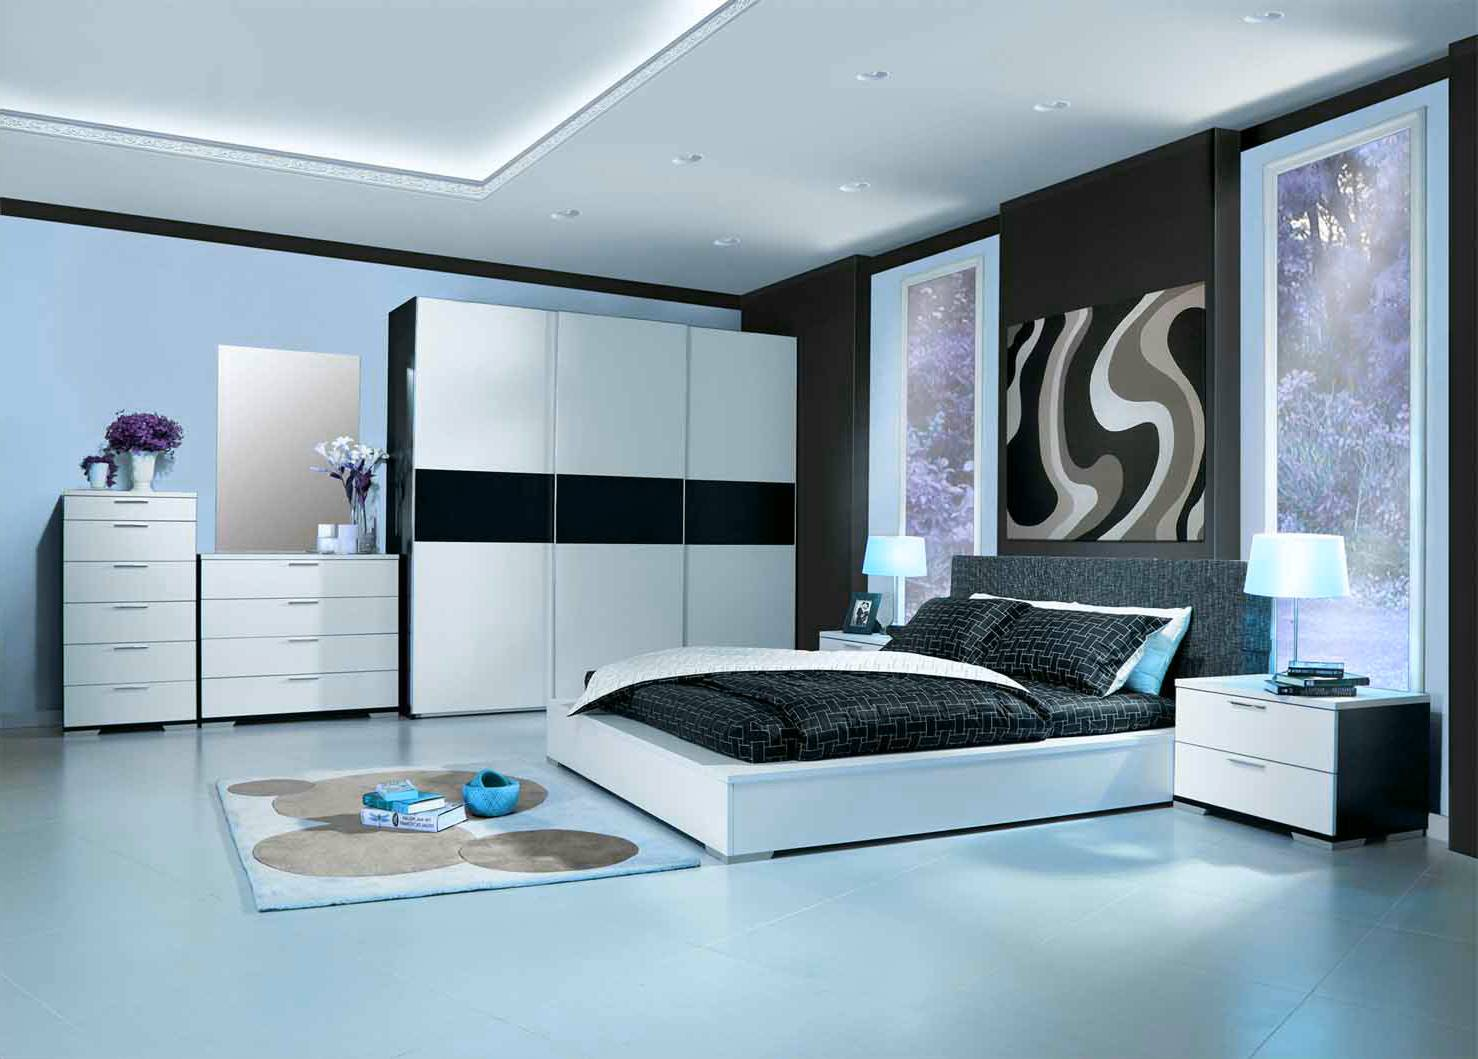 Interior Design For Bedrooms With Bedroom